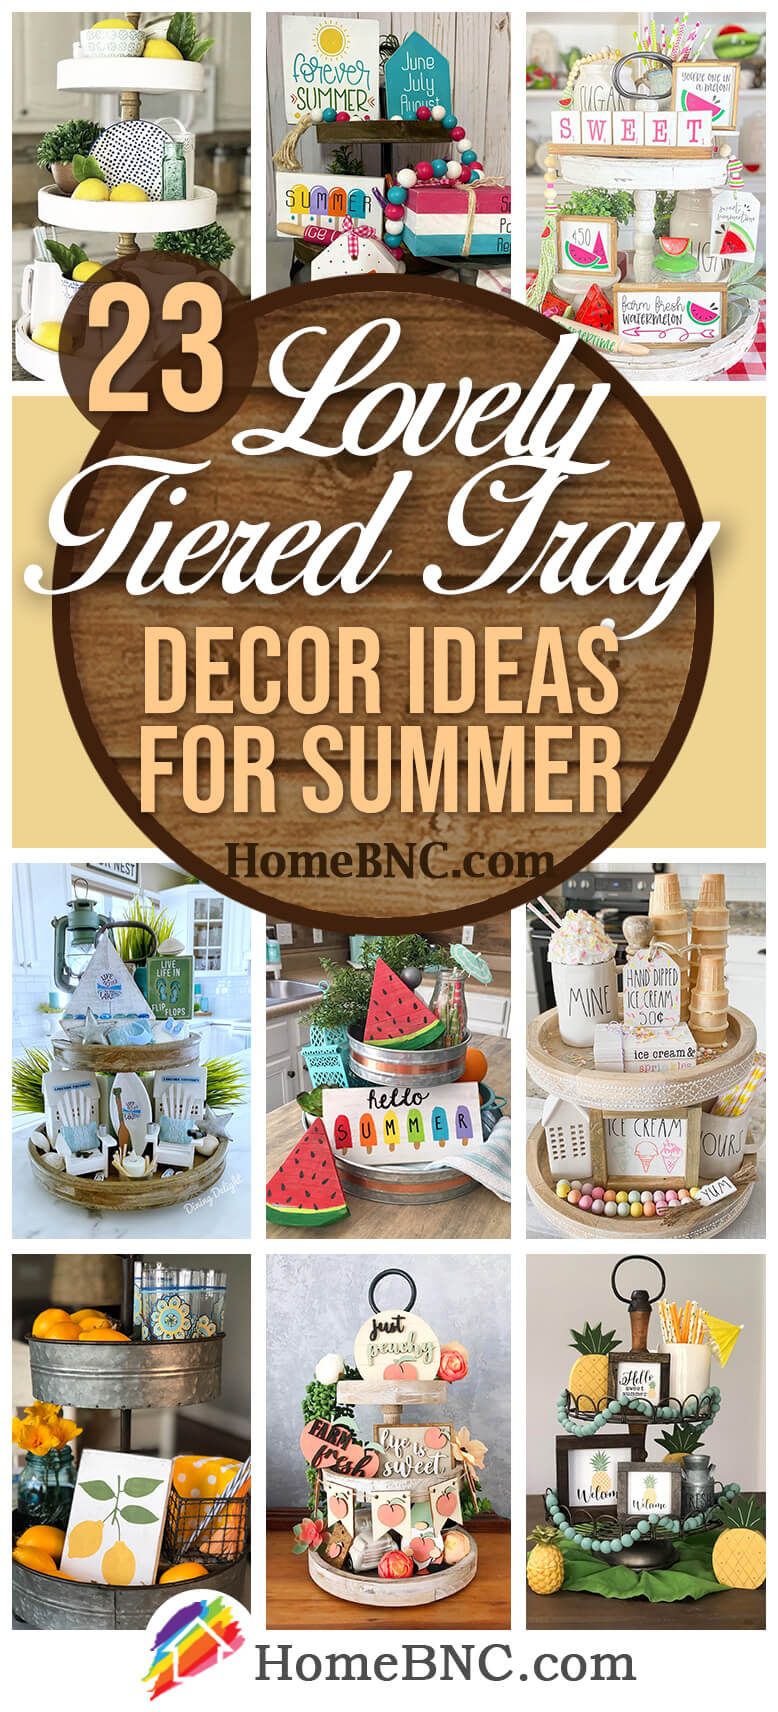 Best Tiered Tray Decor for Summer